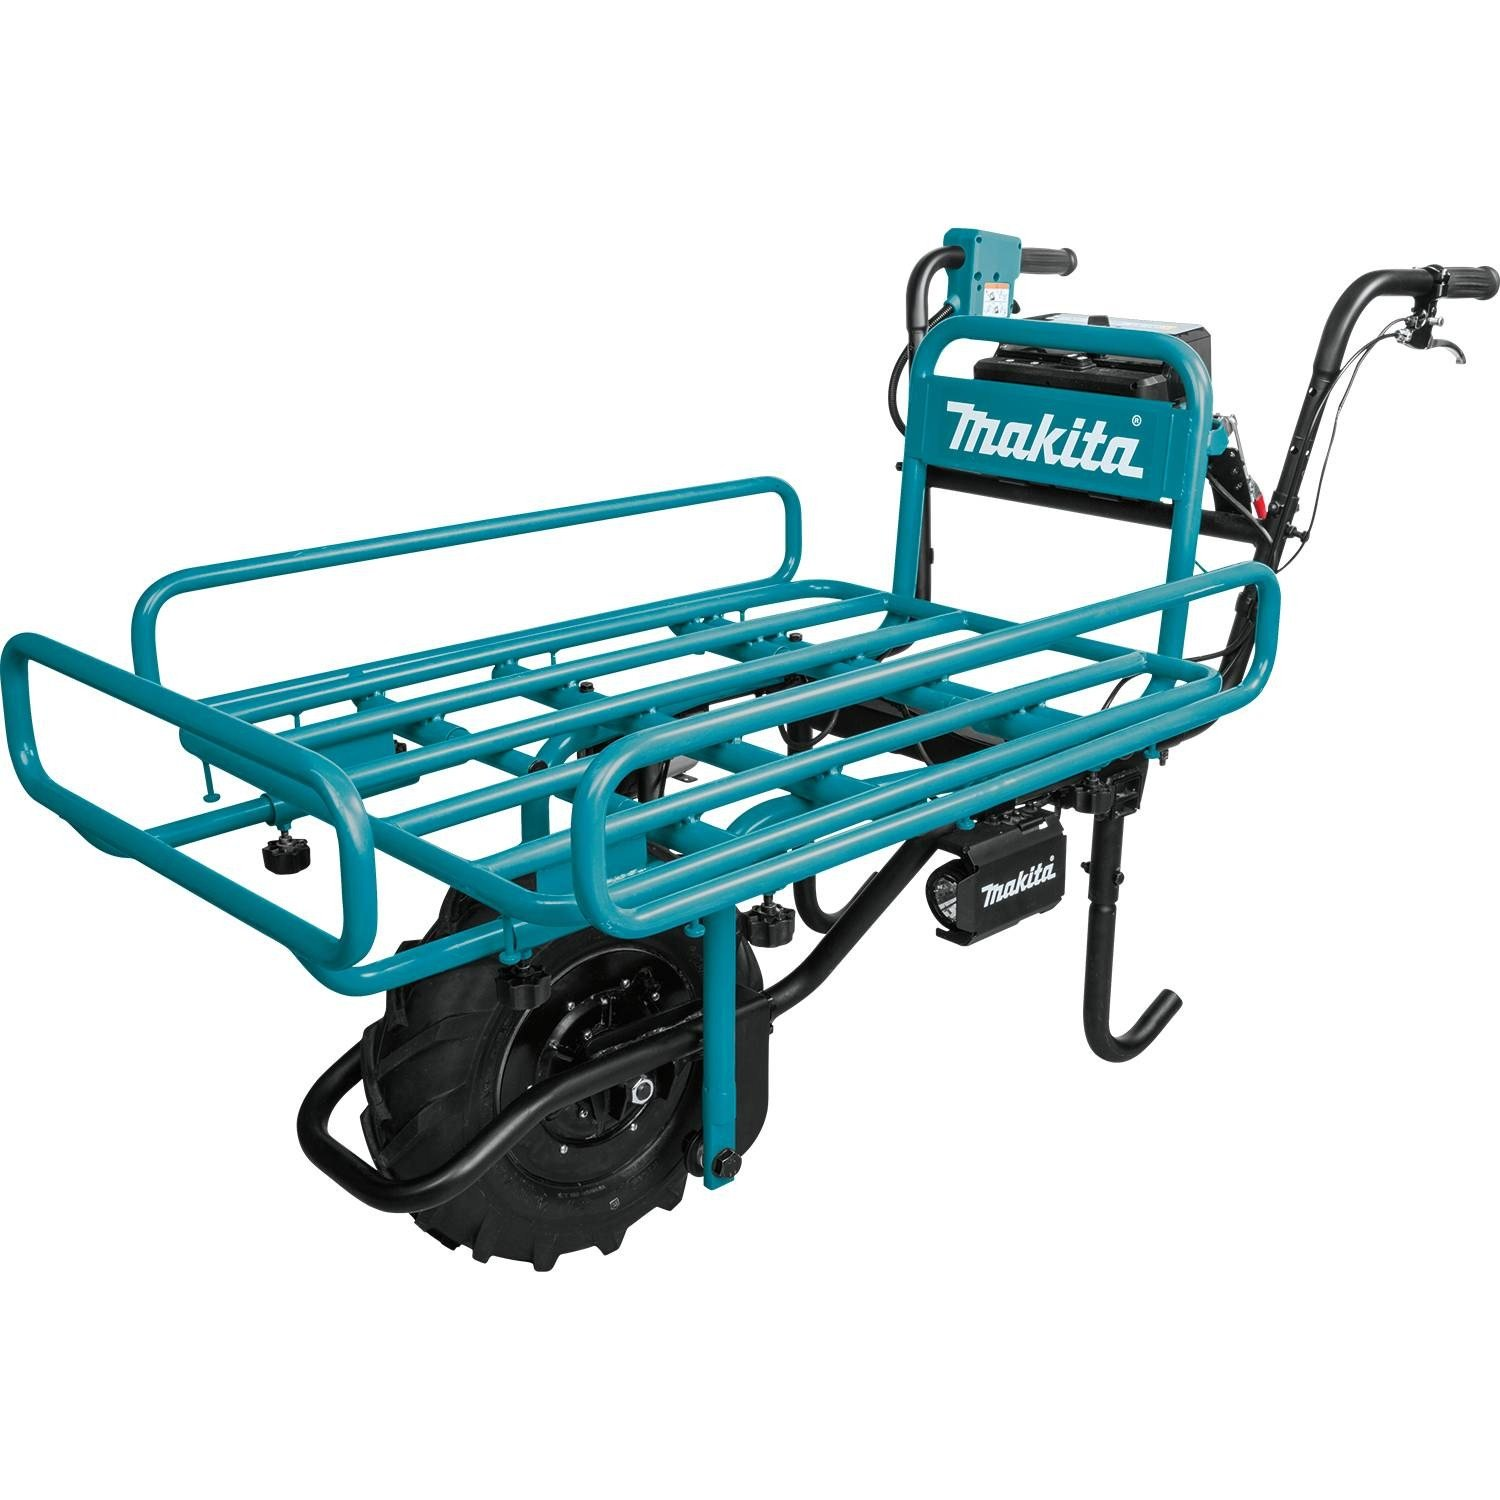 Makita XUC01X2 Power-Assisted Flat Dolly, Tool Only, One Size